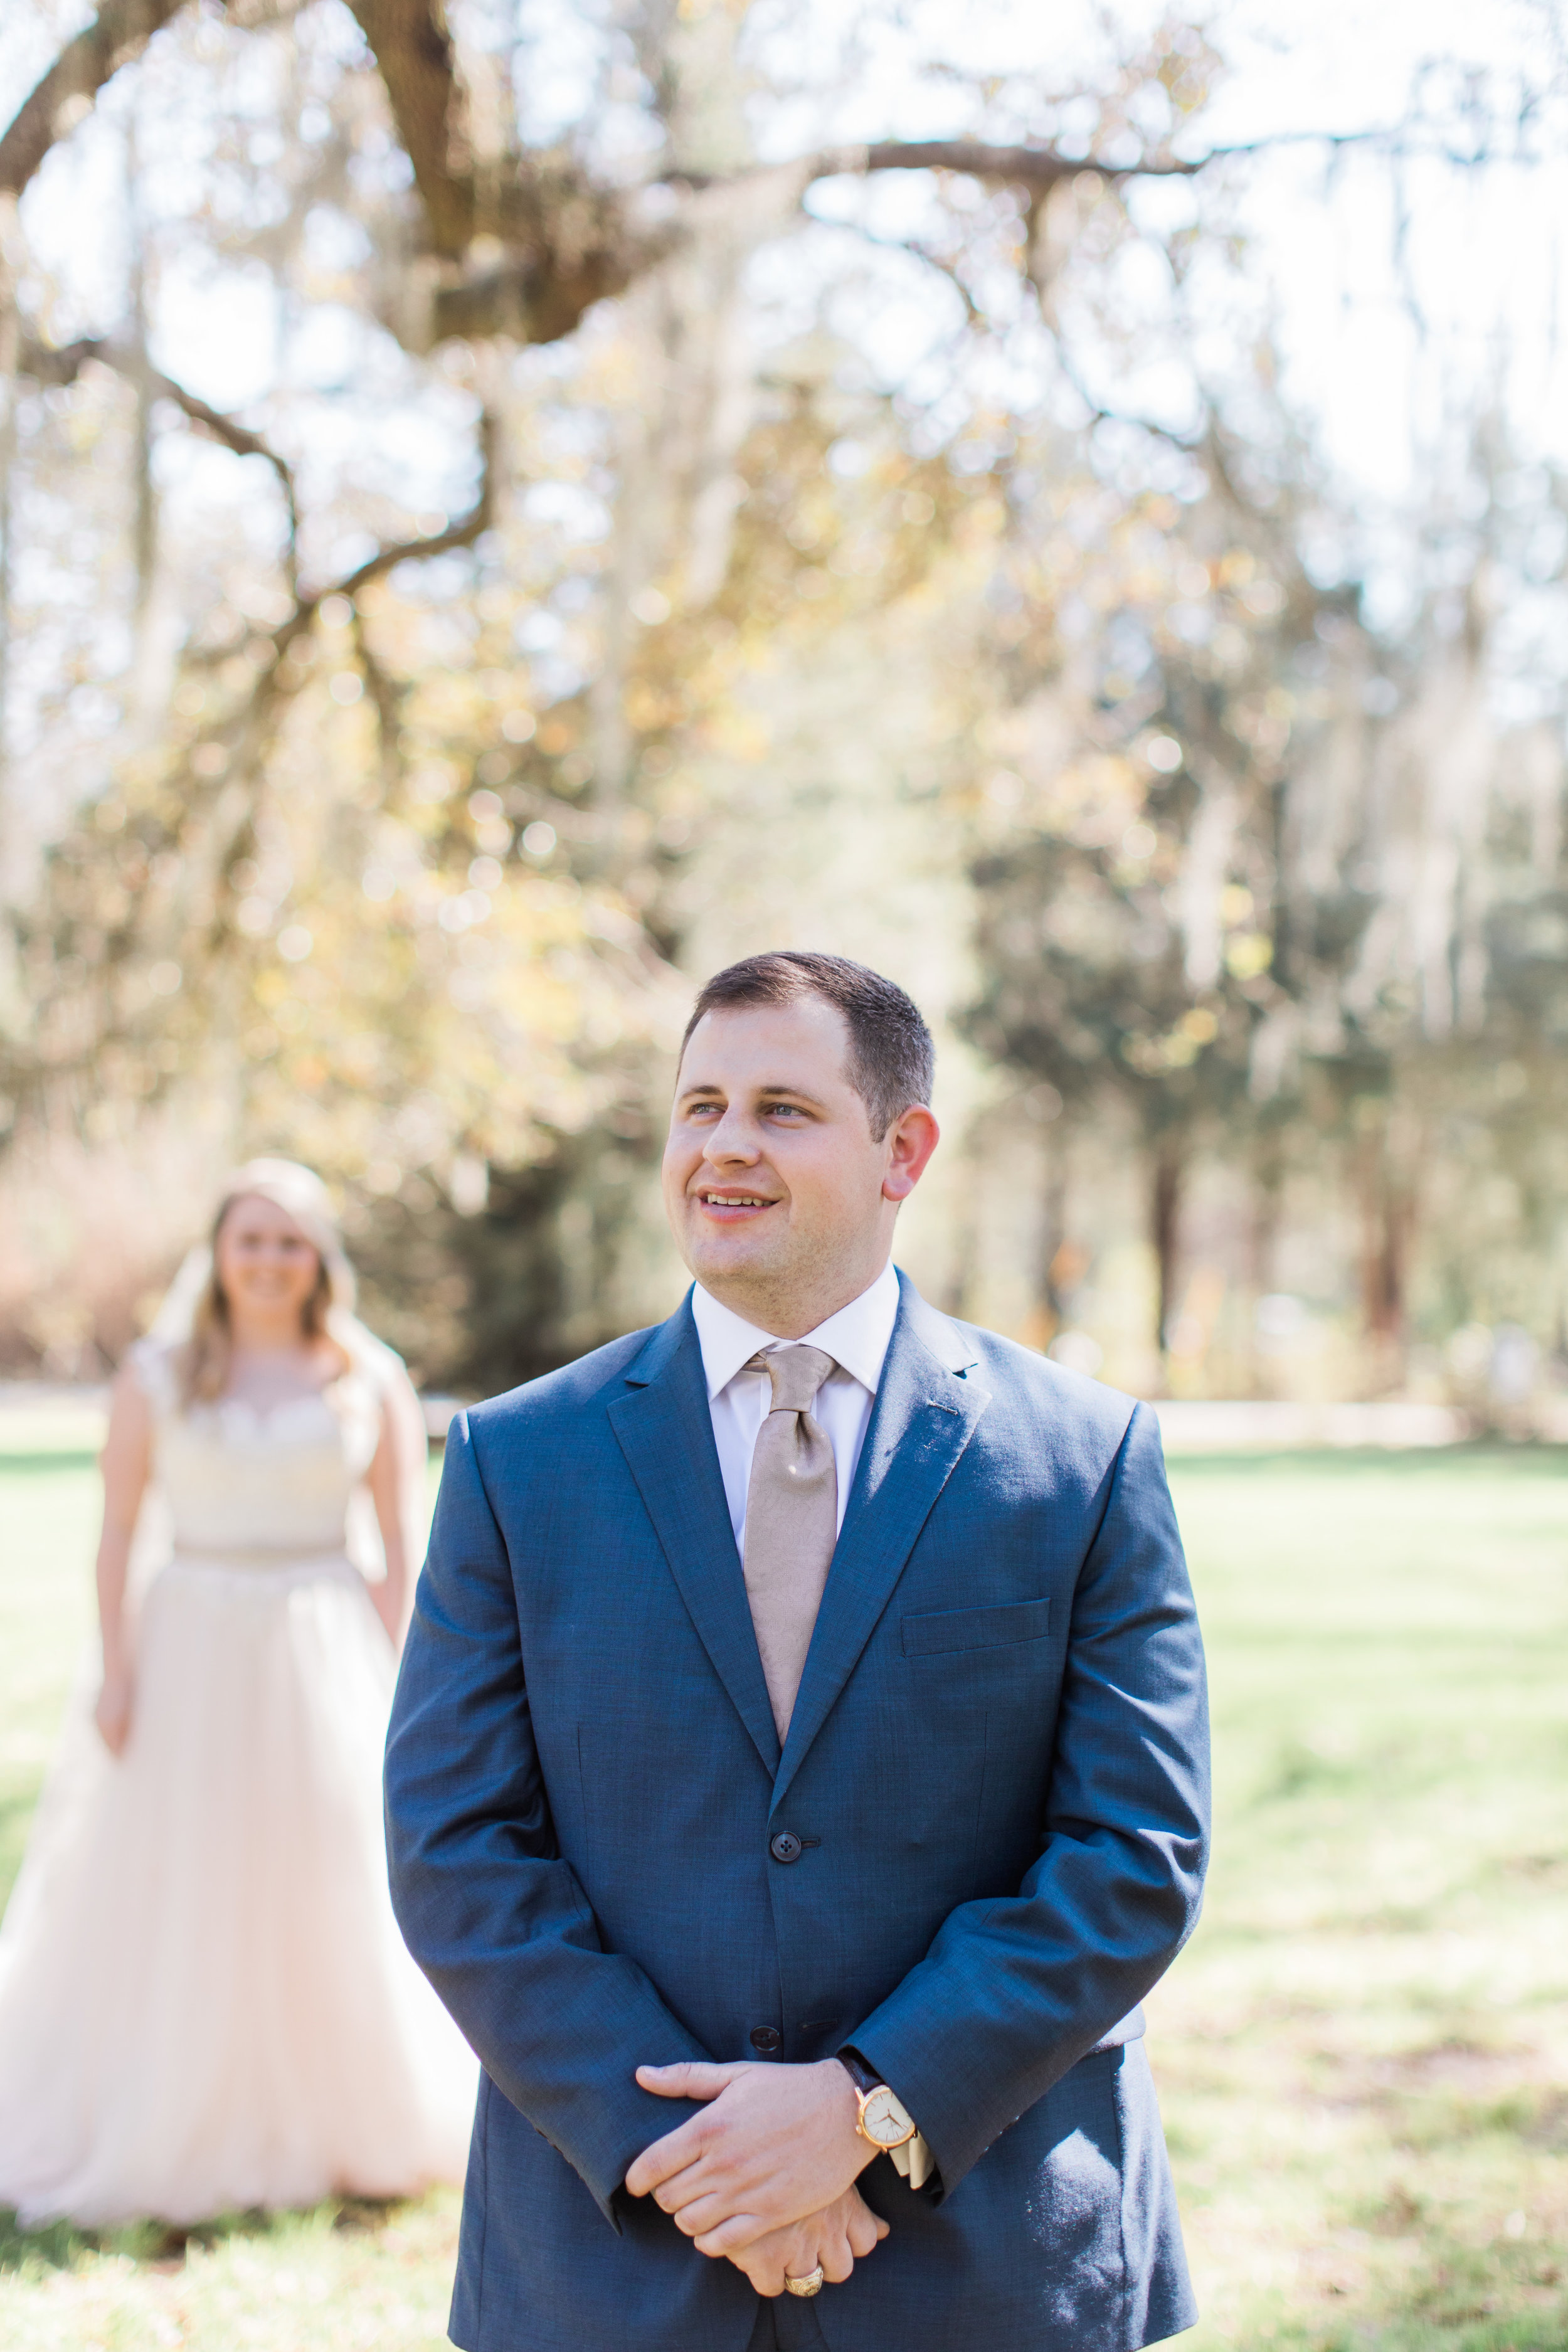 A Magnolia Plantation Charleston South Carolina Wedding - The Overwhelmed Bride Wedding Inspiration Ideas Blog